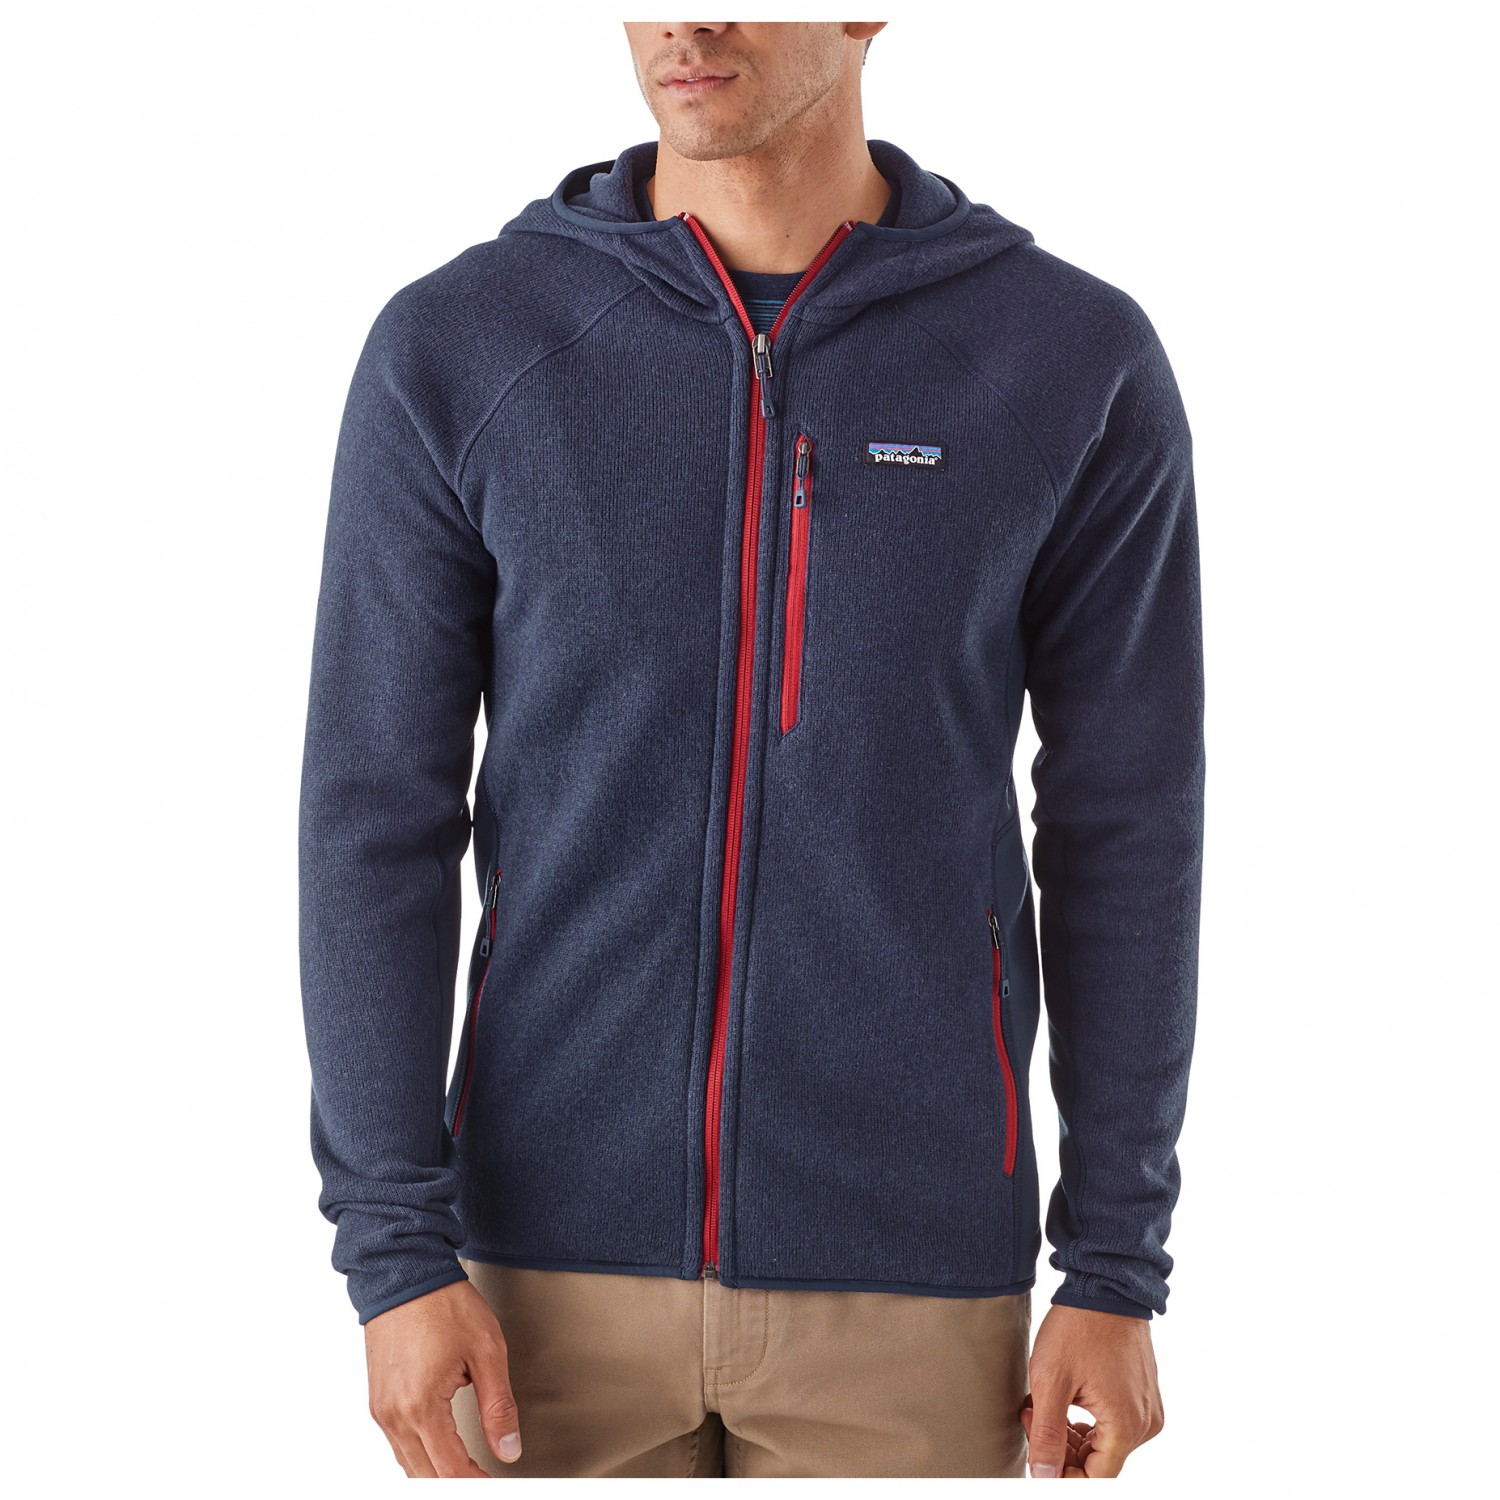 Patagonia Performance Better Sweater Hoody Fleece jacket